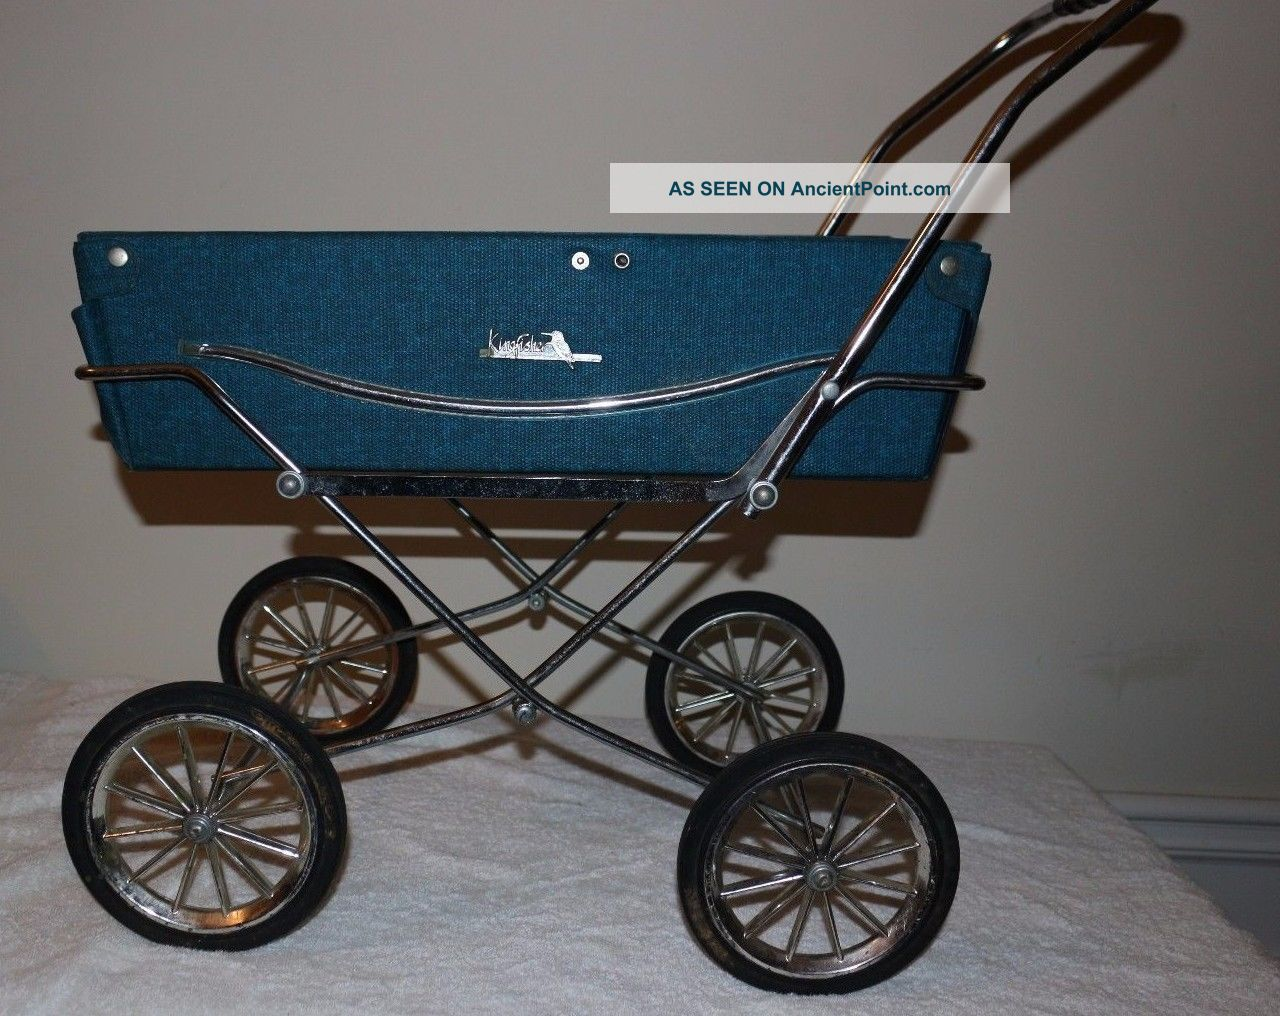 King Fisher Vintage Baby Carriage Stroller Blue Toy Doll Holder Bed Baby Carriages & Buggies photo